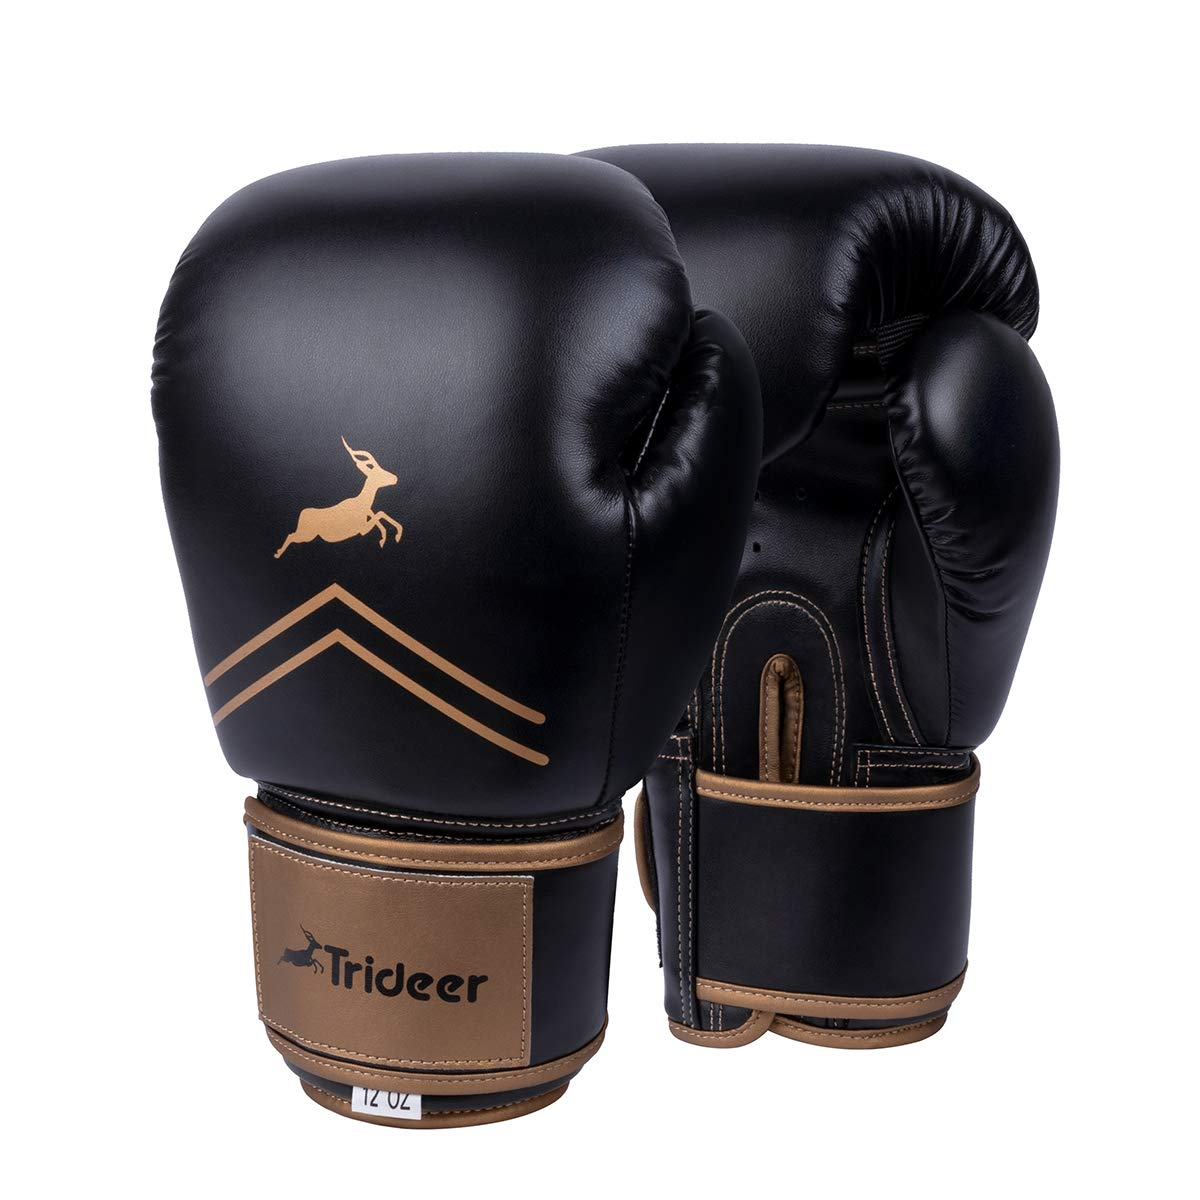 Trideer Pro Grade Boxing Gloves, Kickboxing Bagwork Gel Sparring Training Gloves, Muay Thai Style Punching Bag Mitts, Fight Gloves Men & Women (Black & Gloden, 16 oz)